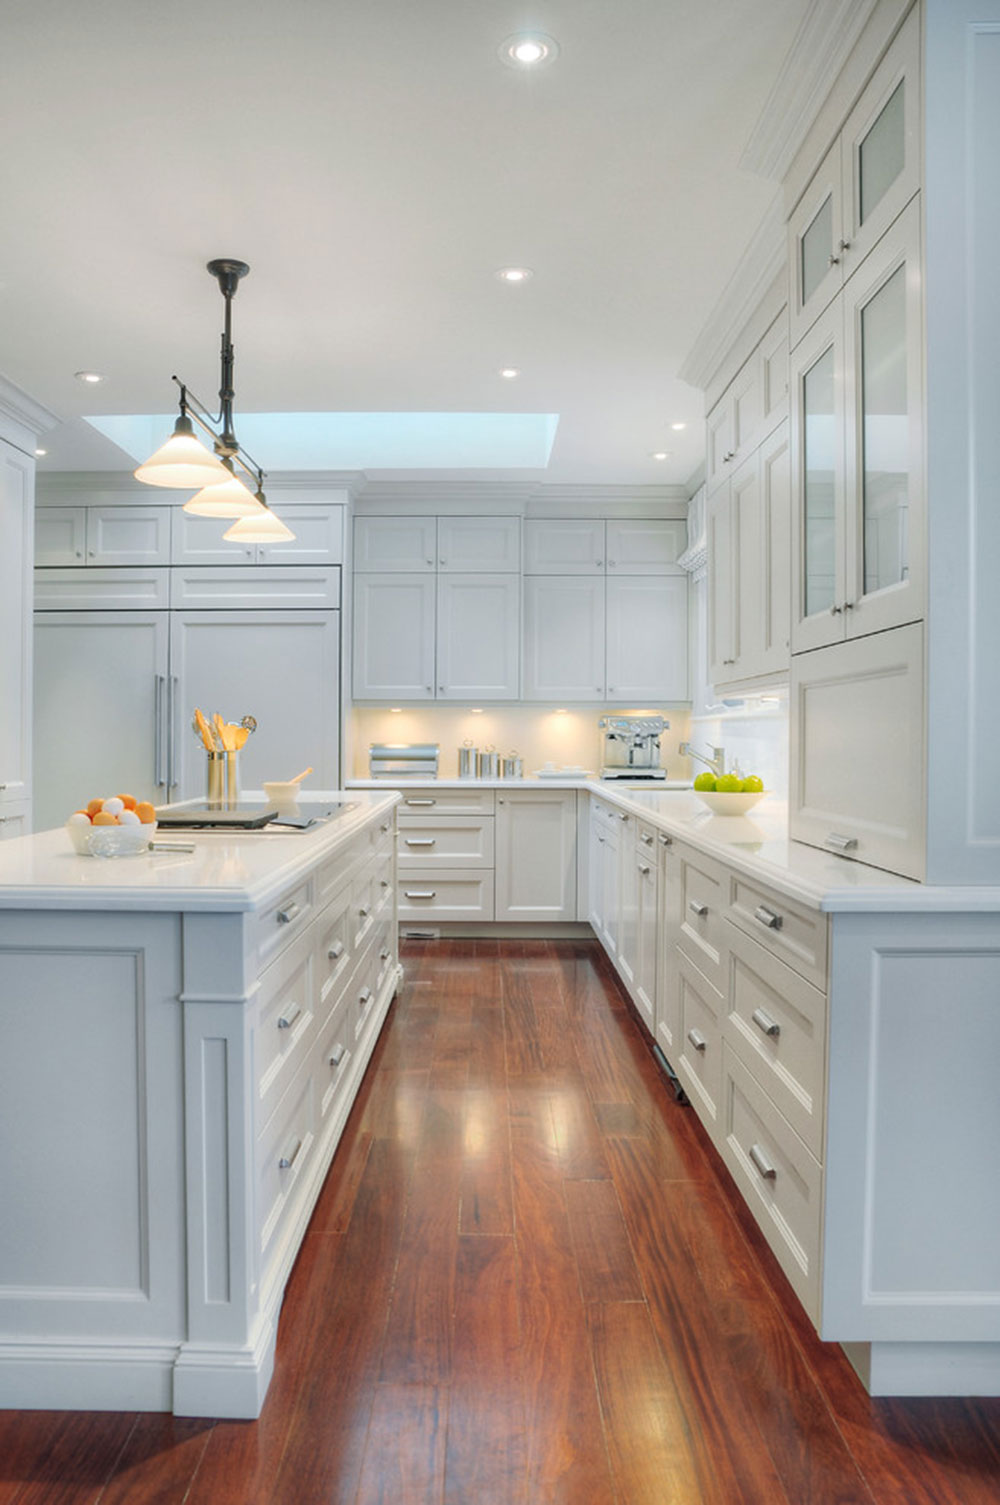 Bright Your Kitchen With Sparkling White Quartz Countertop18